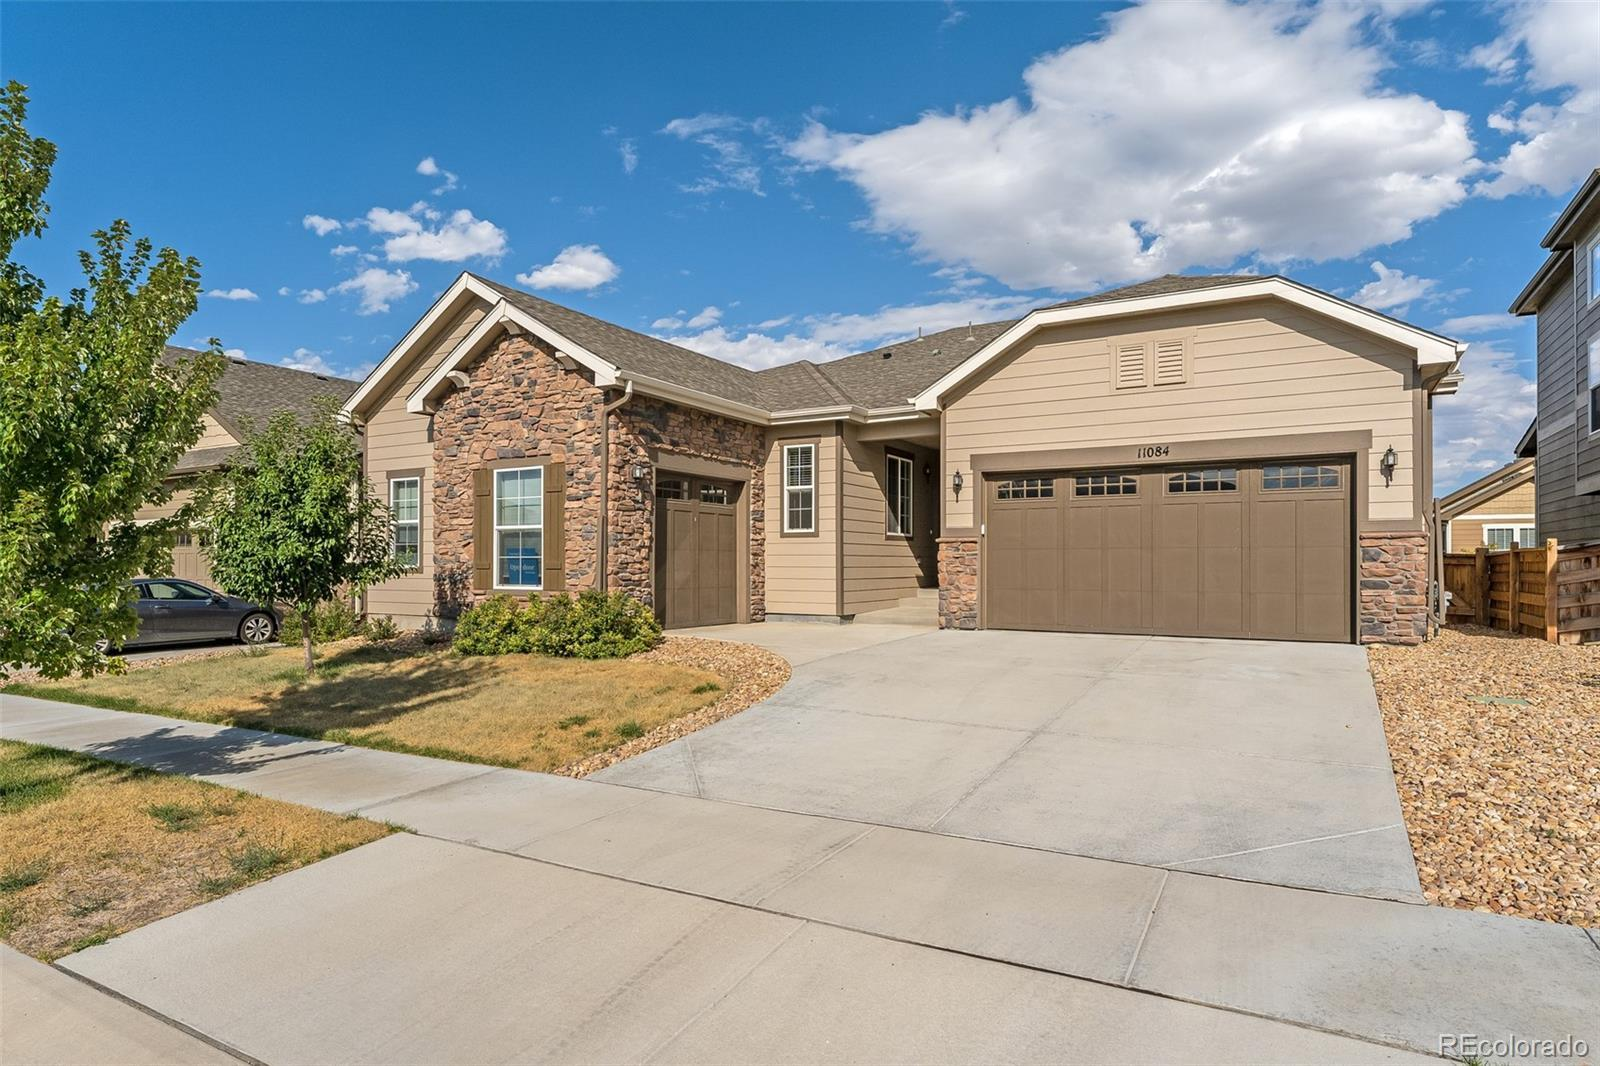 11084 Pitkin Street, Commerce City, CO 80022 - #: 7921664